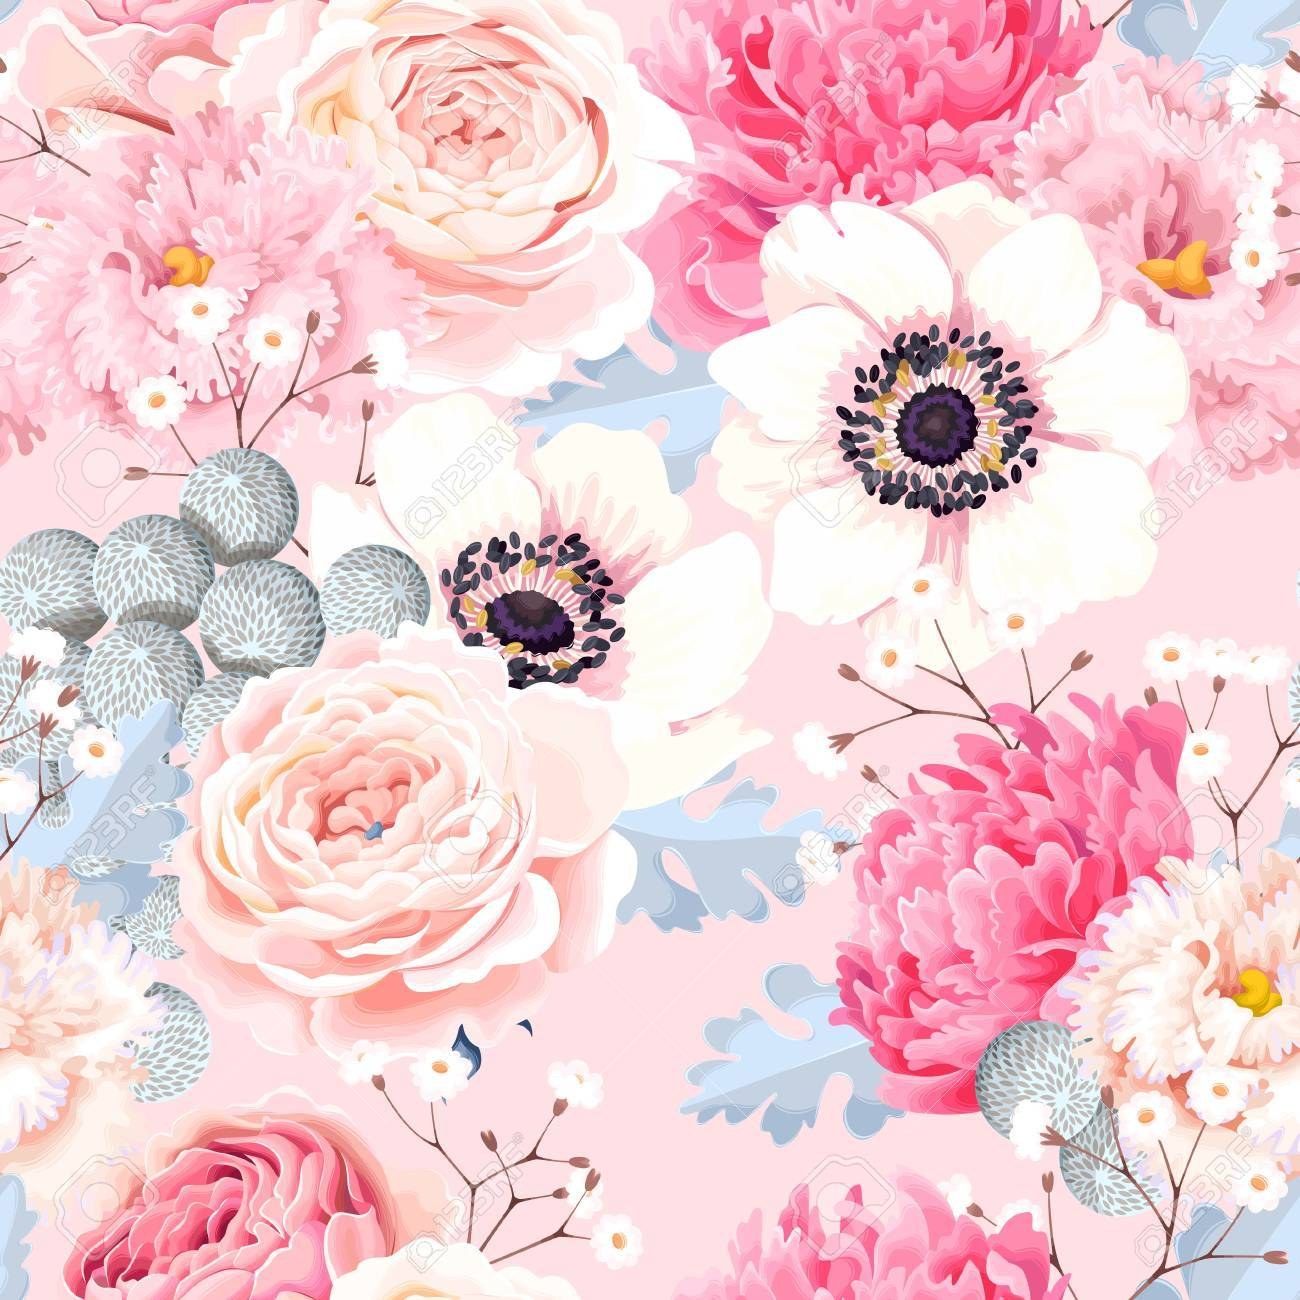 Seamless pattern with anemones and roses - 88253033